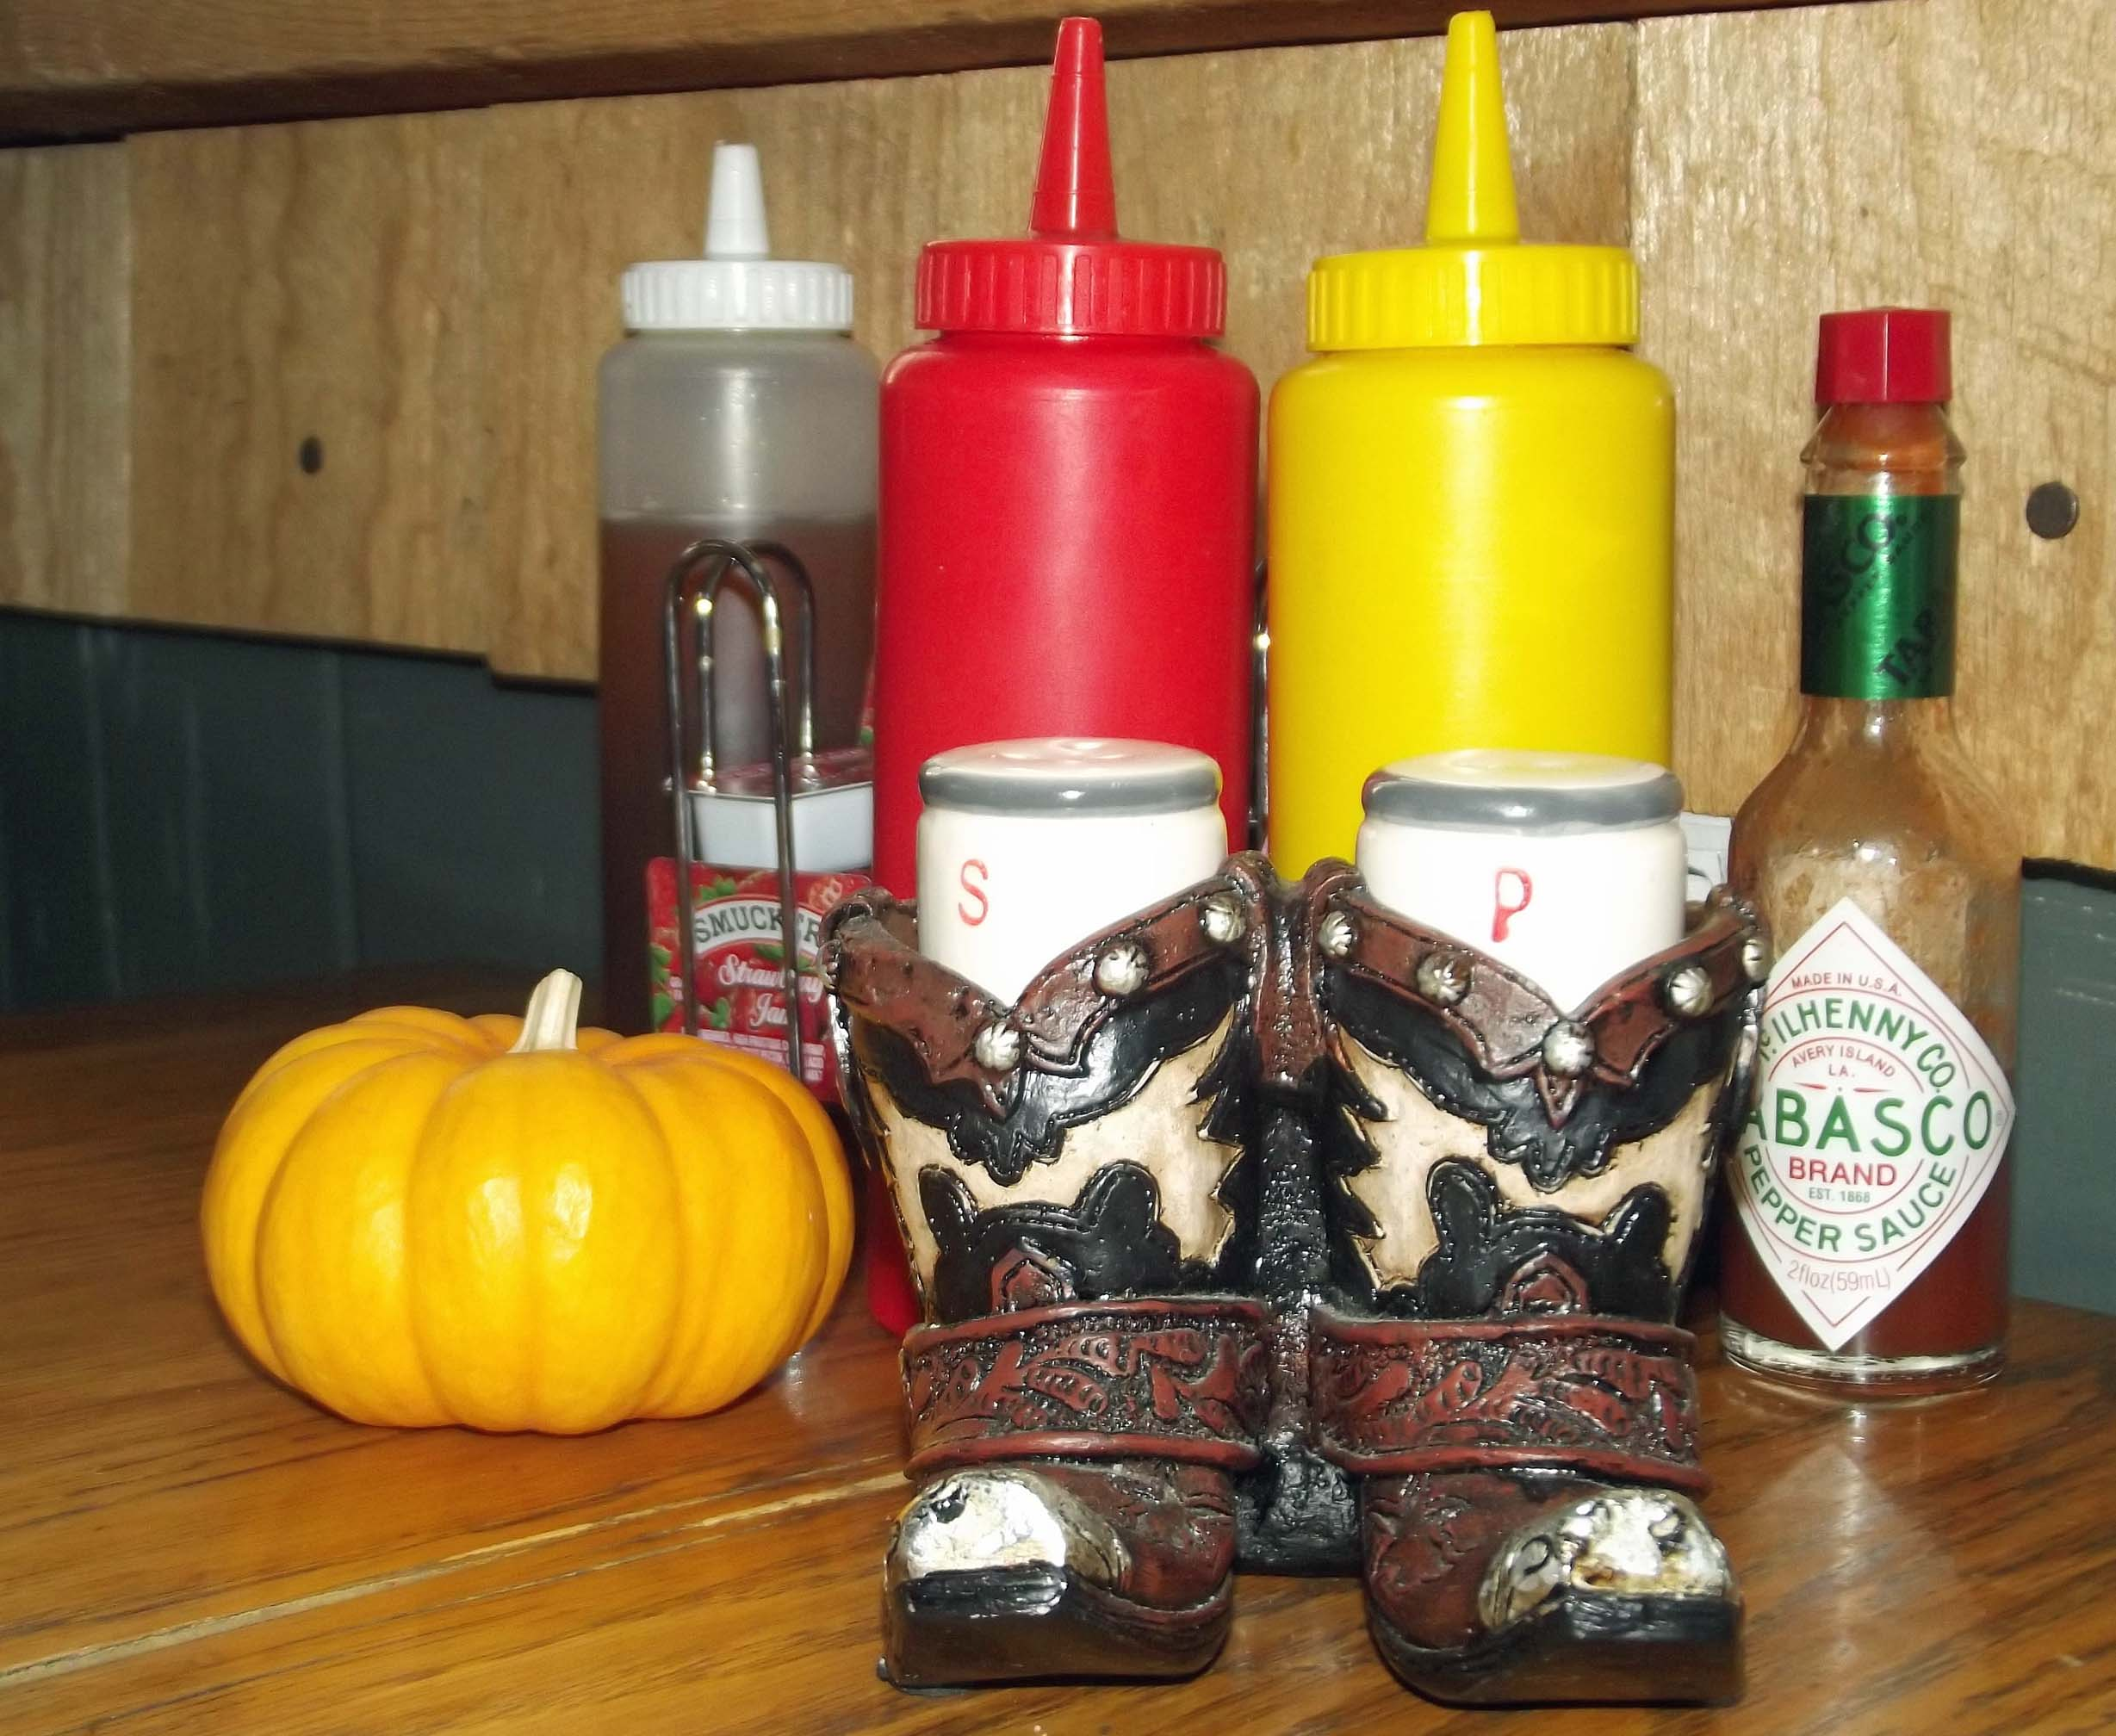 Table with sauce bottles and cowboy boot salt and pepper pots